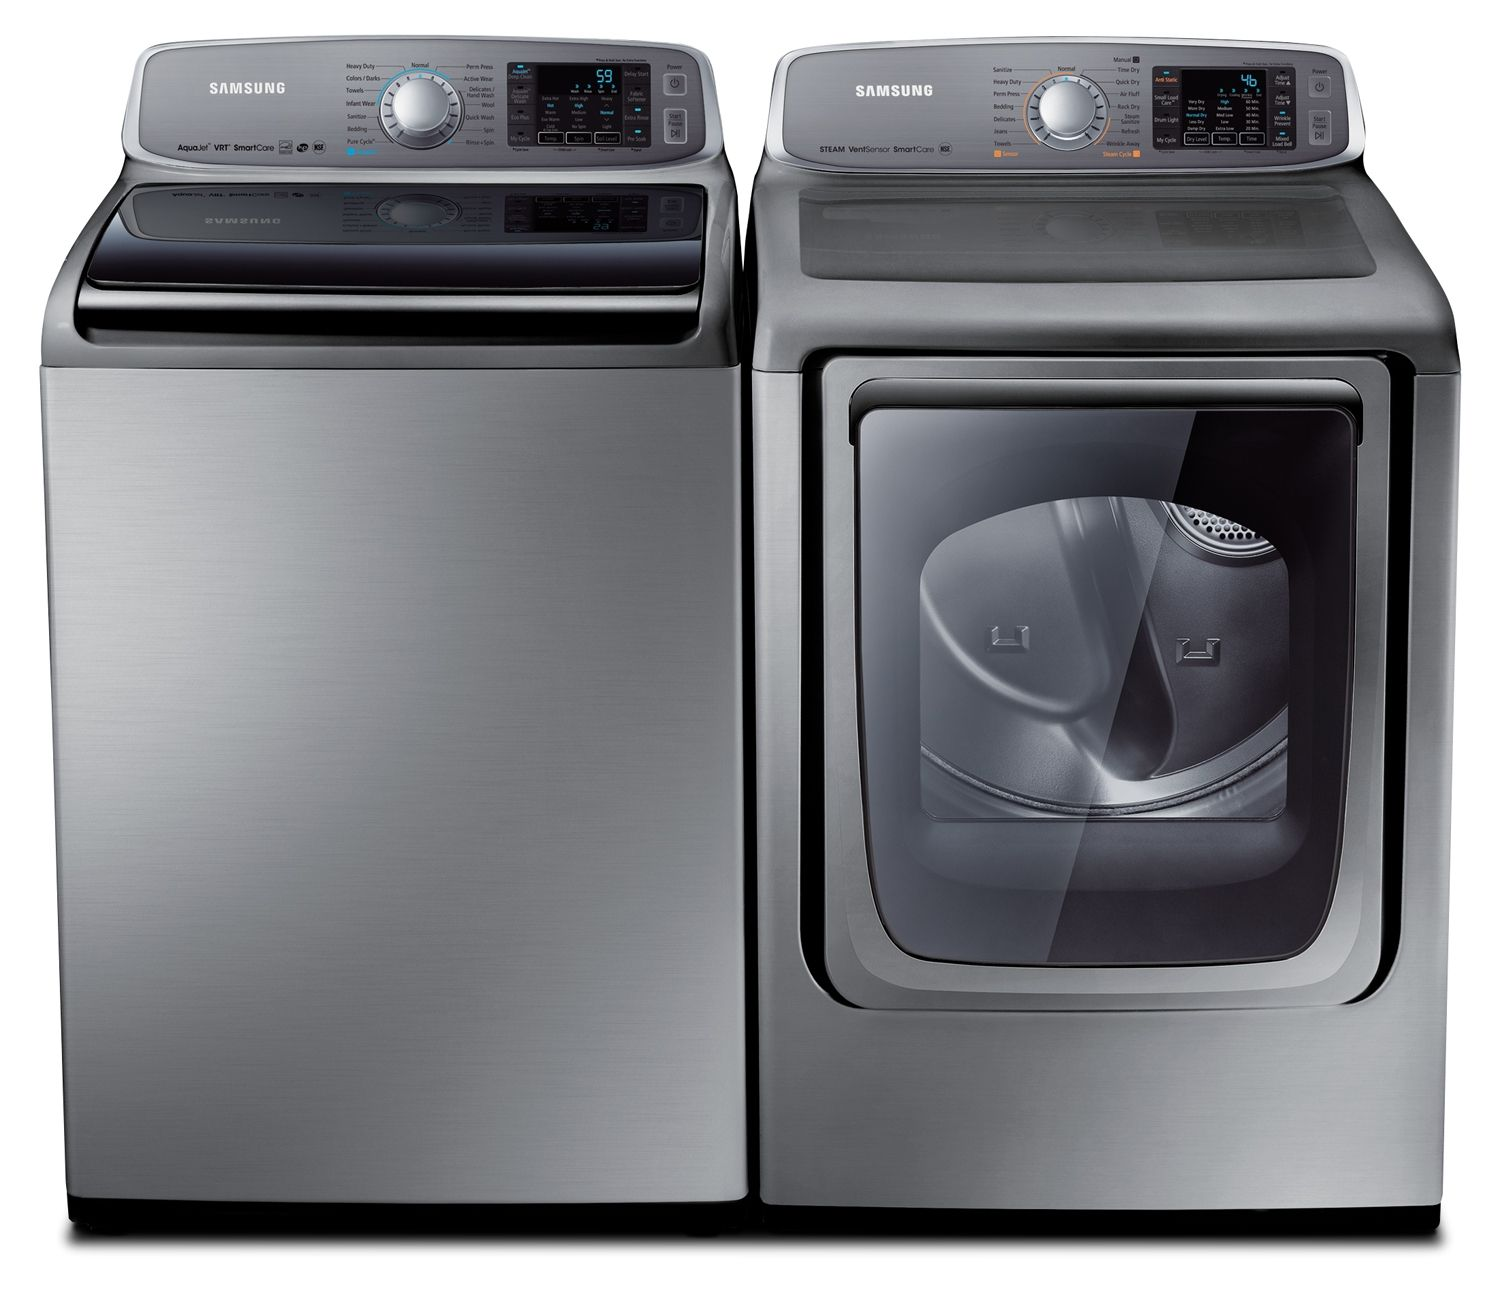 Samsung Washer Dryer Package Leon S Washer And Dryer Samsung Washer Washer